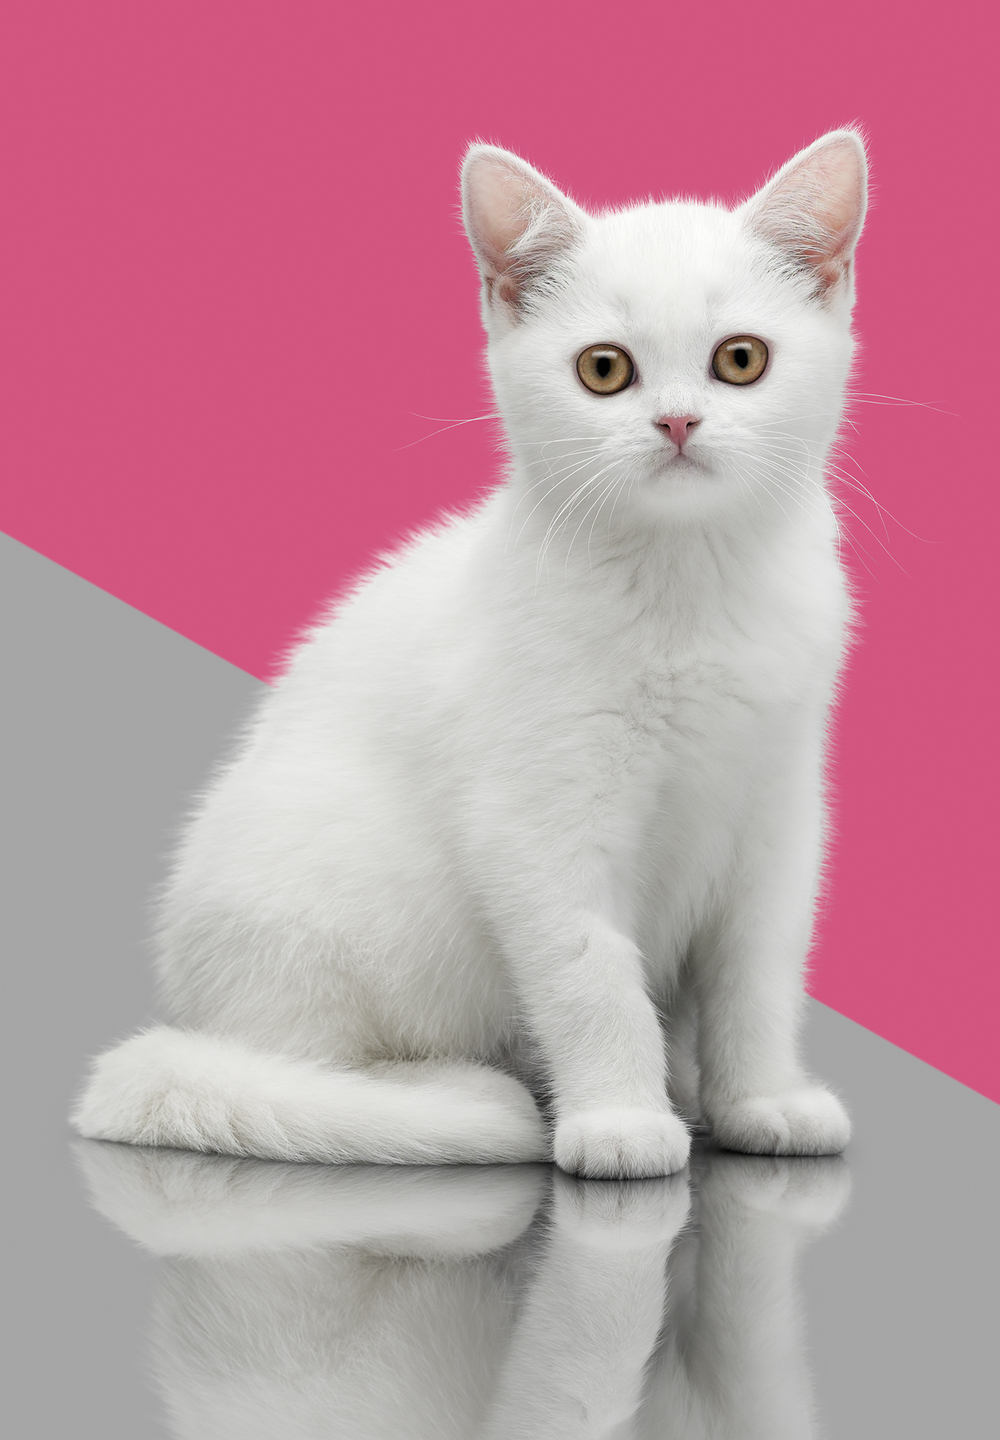 Purina-BSH_White_Kitten_028.jpg